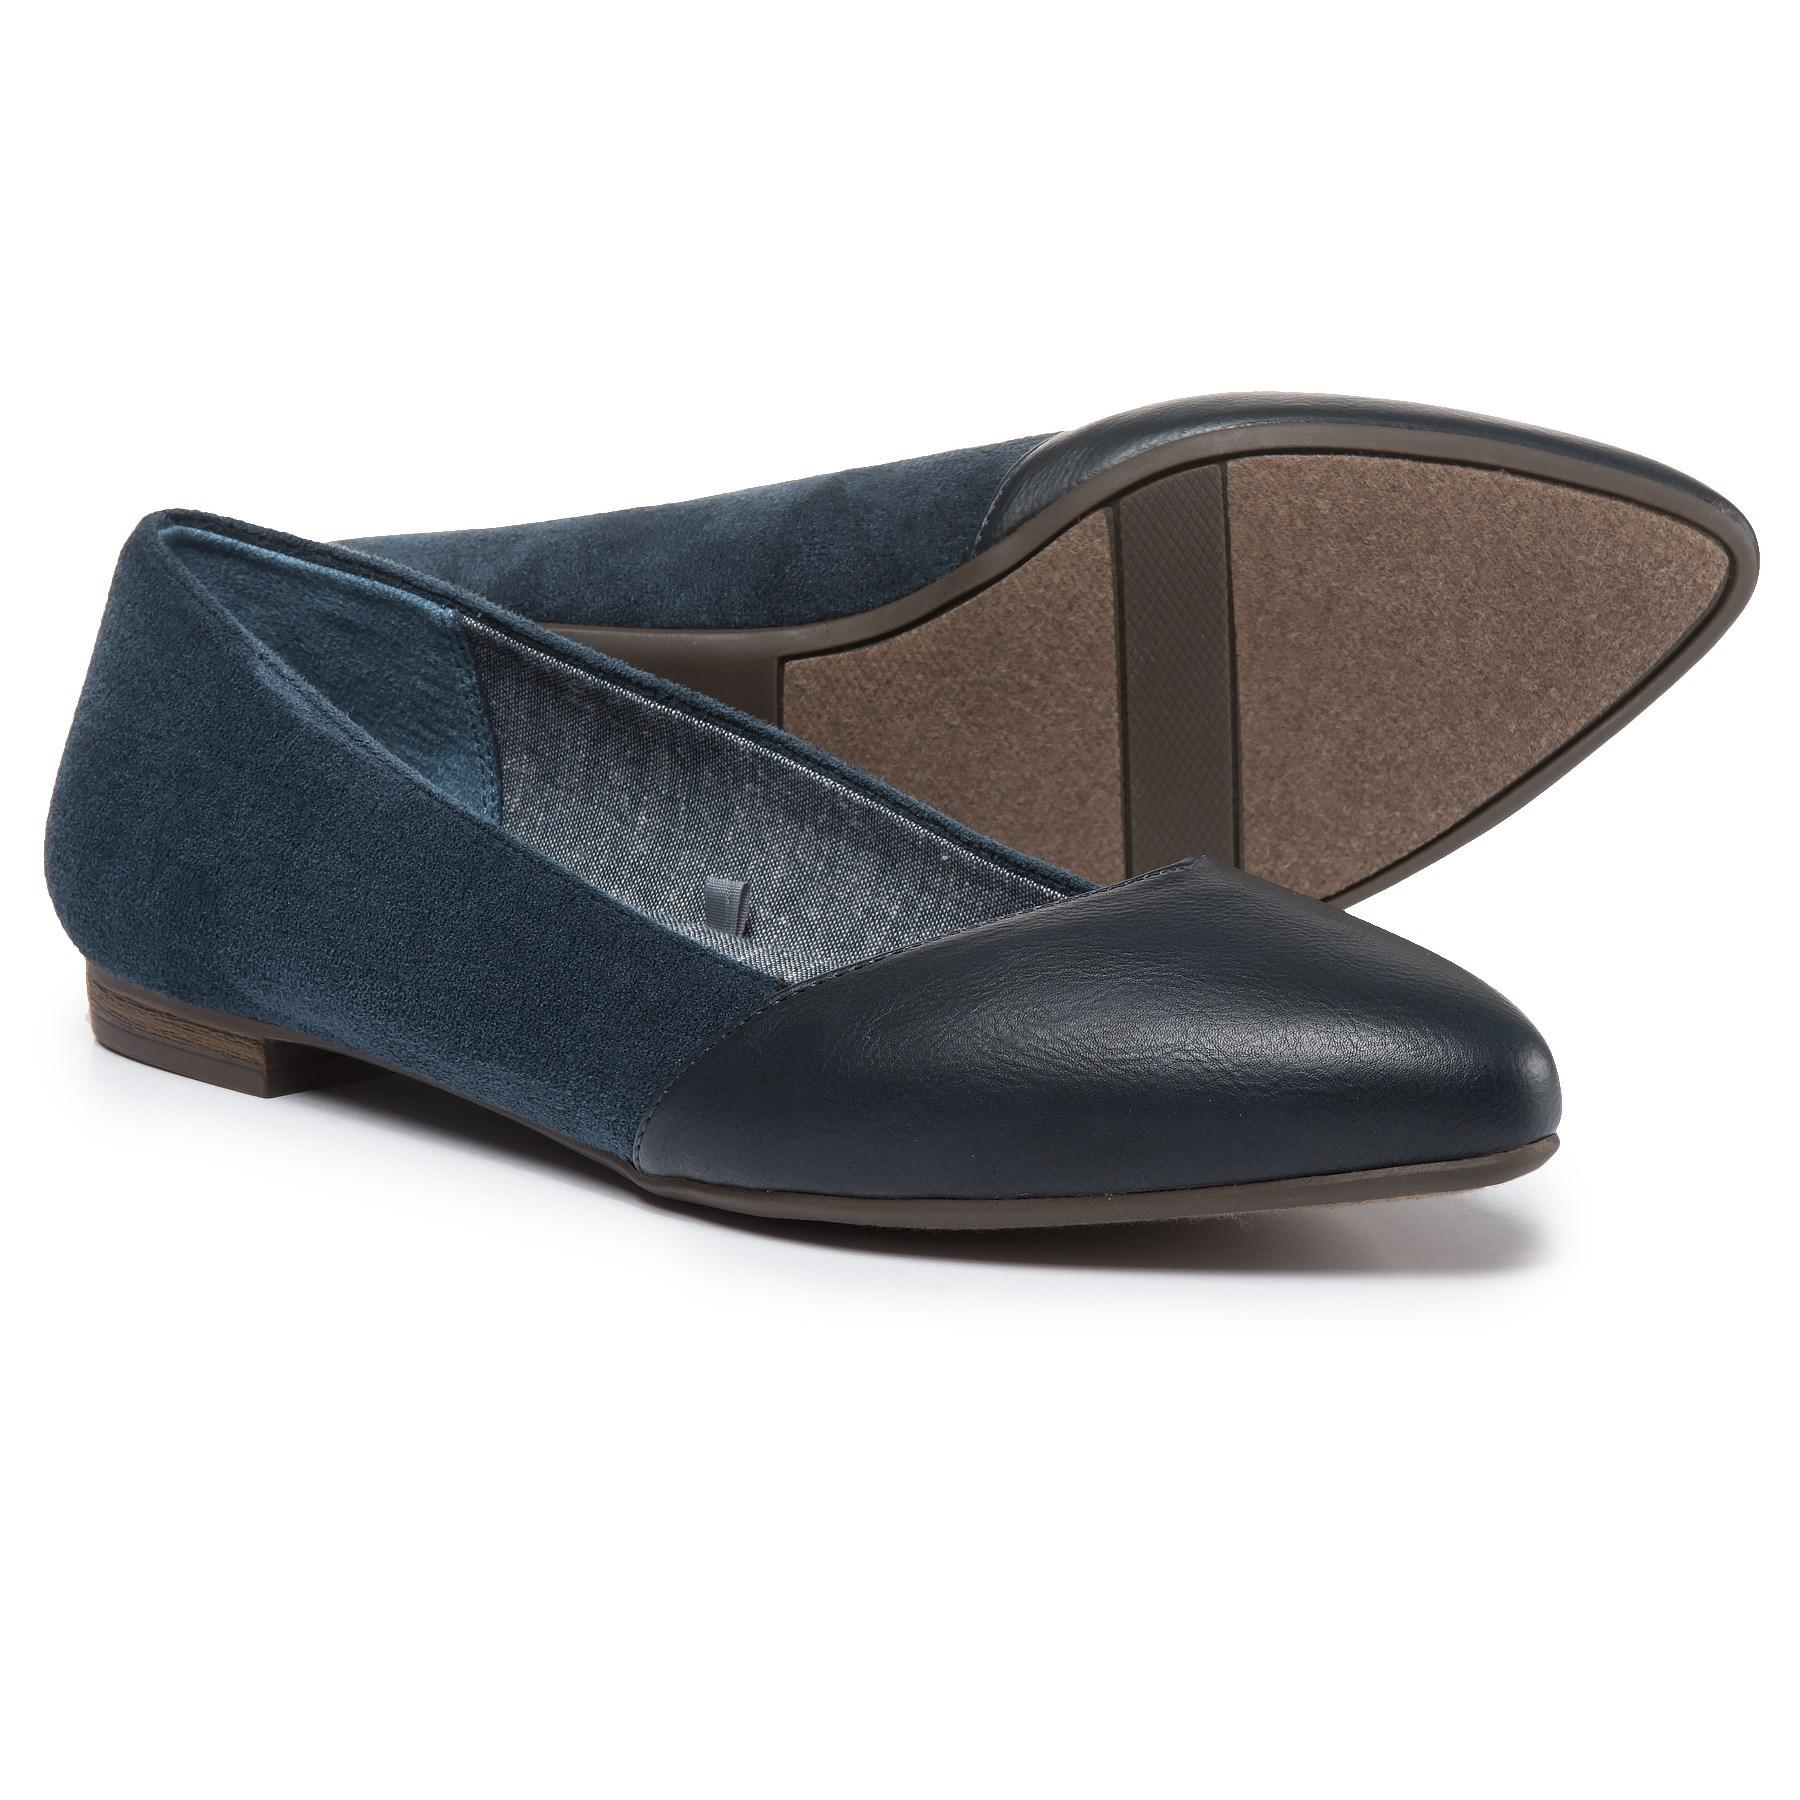 3c3c19788f58 Lyst - Dr. Scholls Vegan-leather Flats (for Women) in Blue